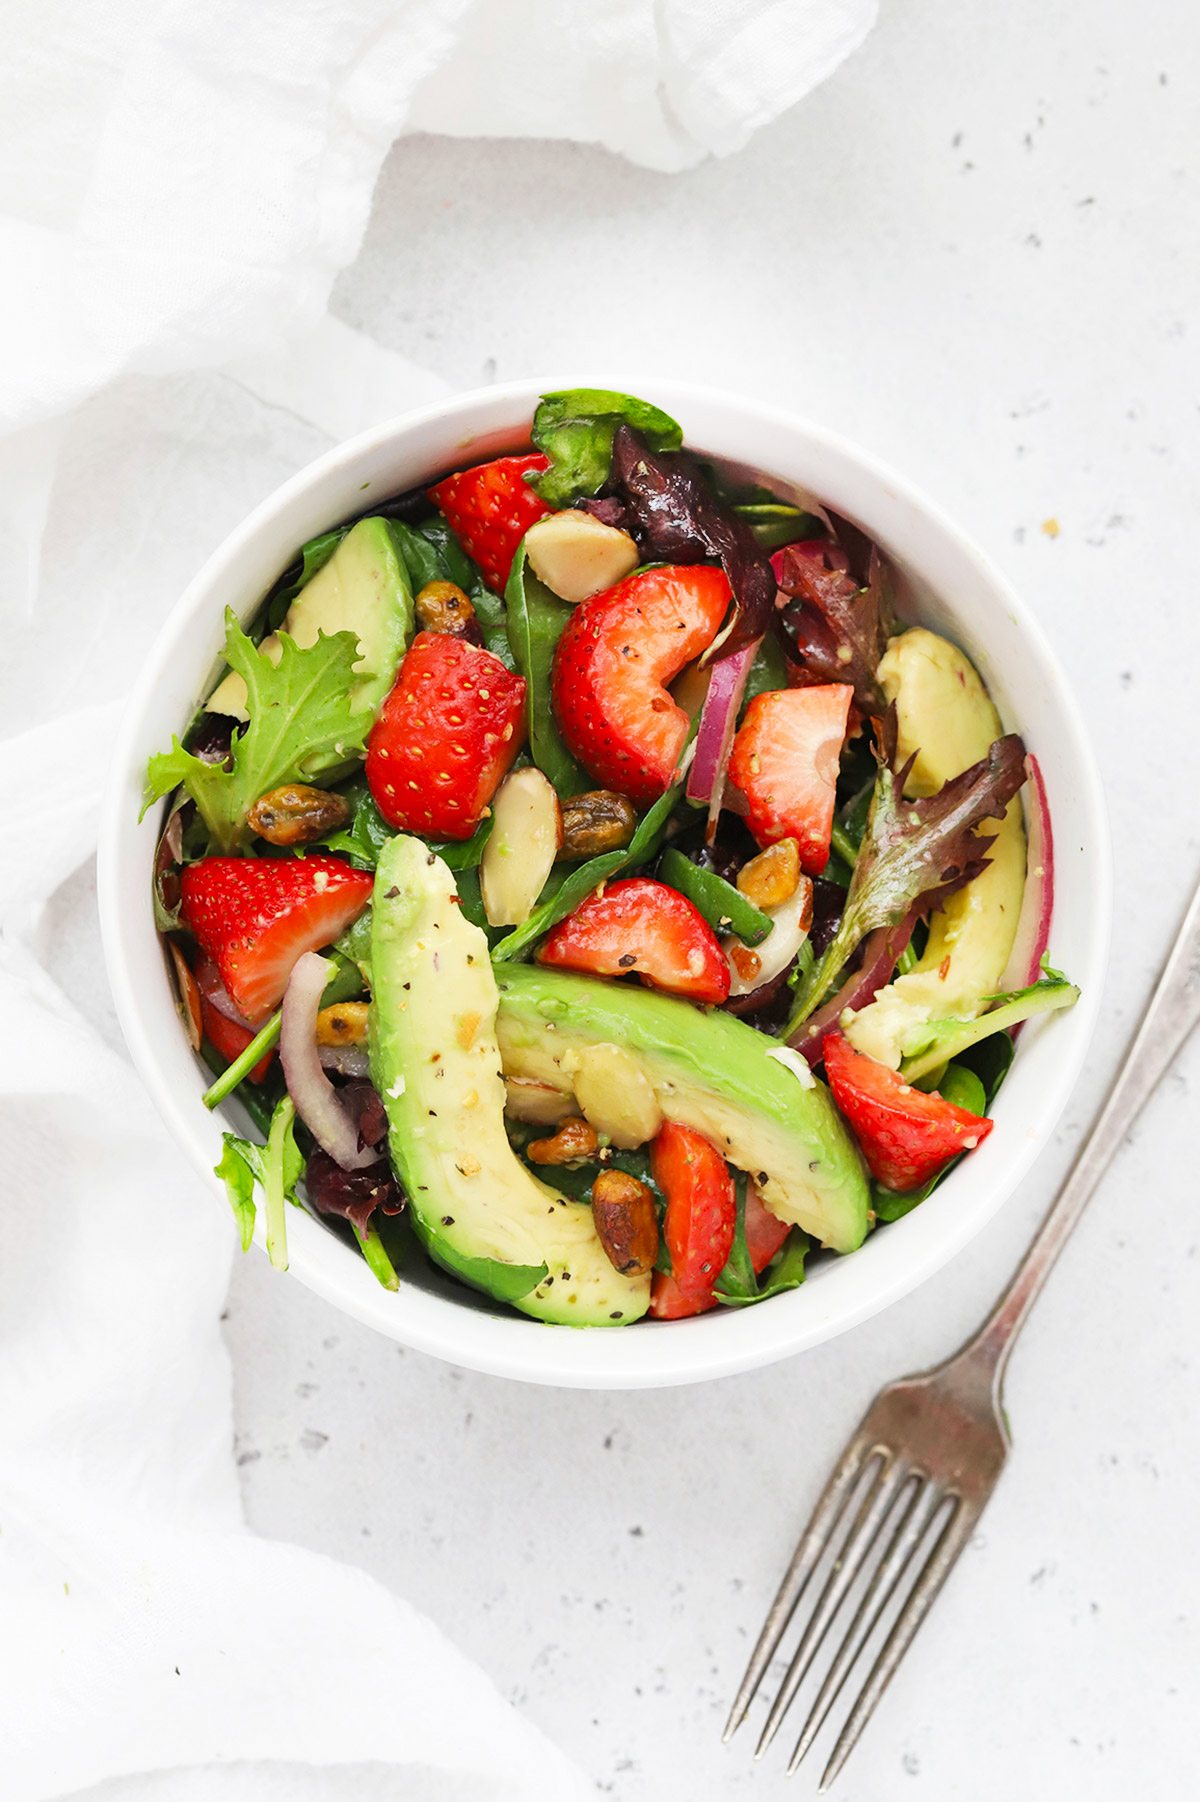 Overhead view of a white bowl of strawberry spinach salad and a fork on a white background